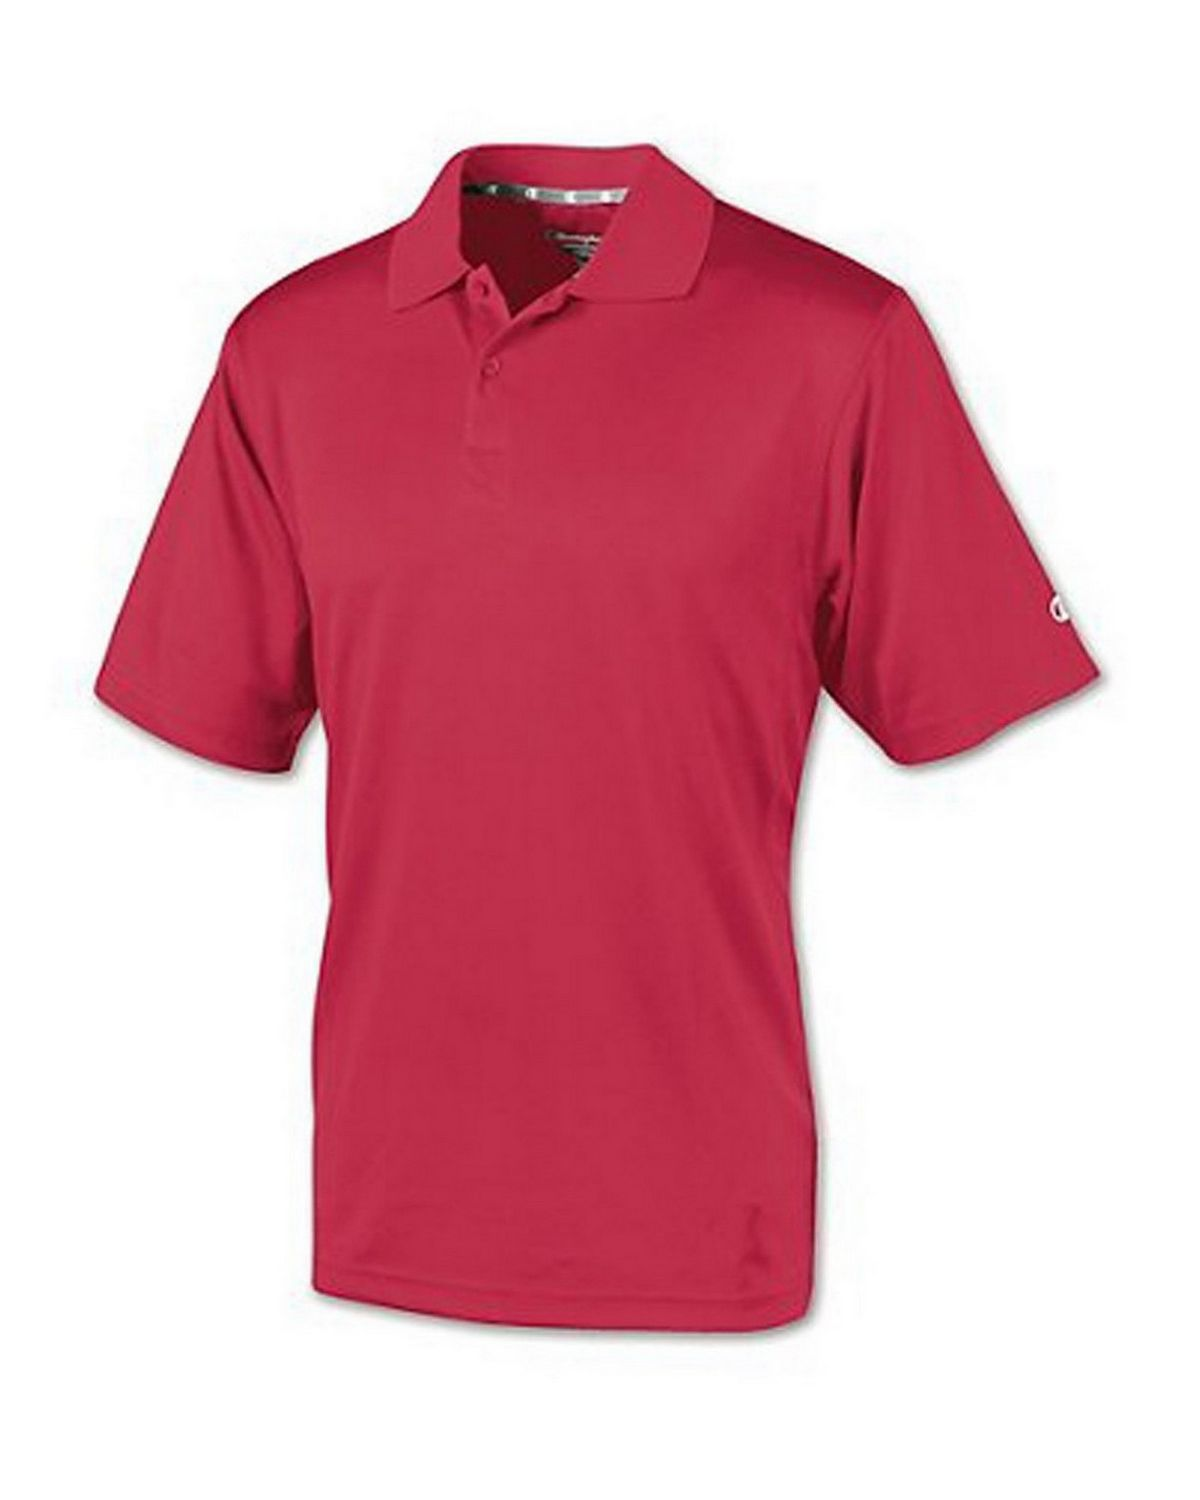 Champion H131 Double Dry Ultimate Polo - Scarlet - XL H131